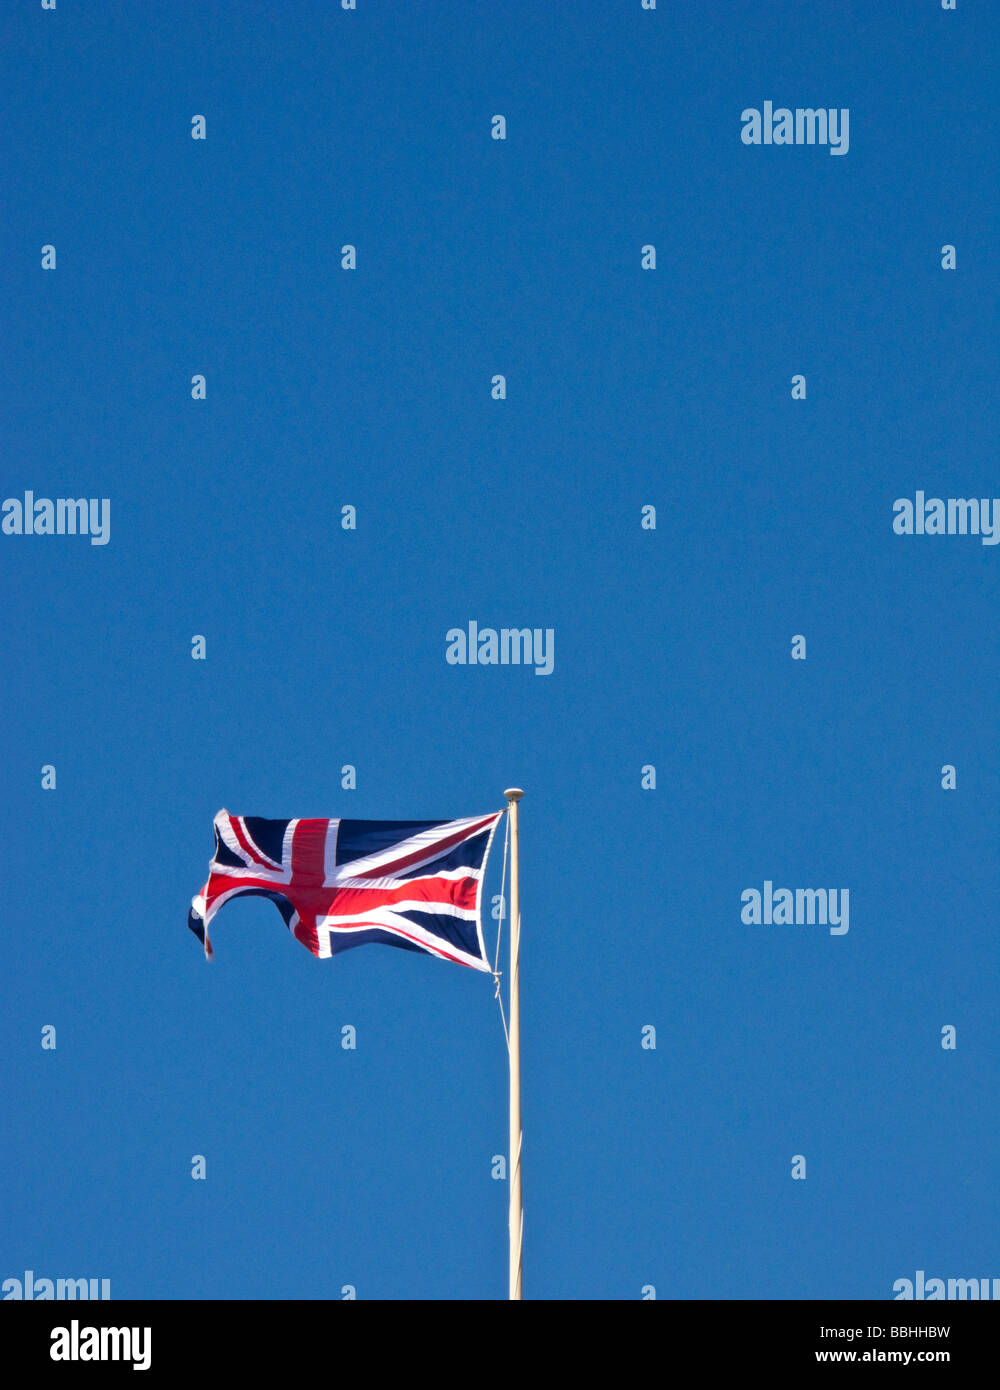 UNION FLAG FLYING ON A FLAGPOLE AGAINST A BLUE SKY - Stock Image